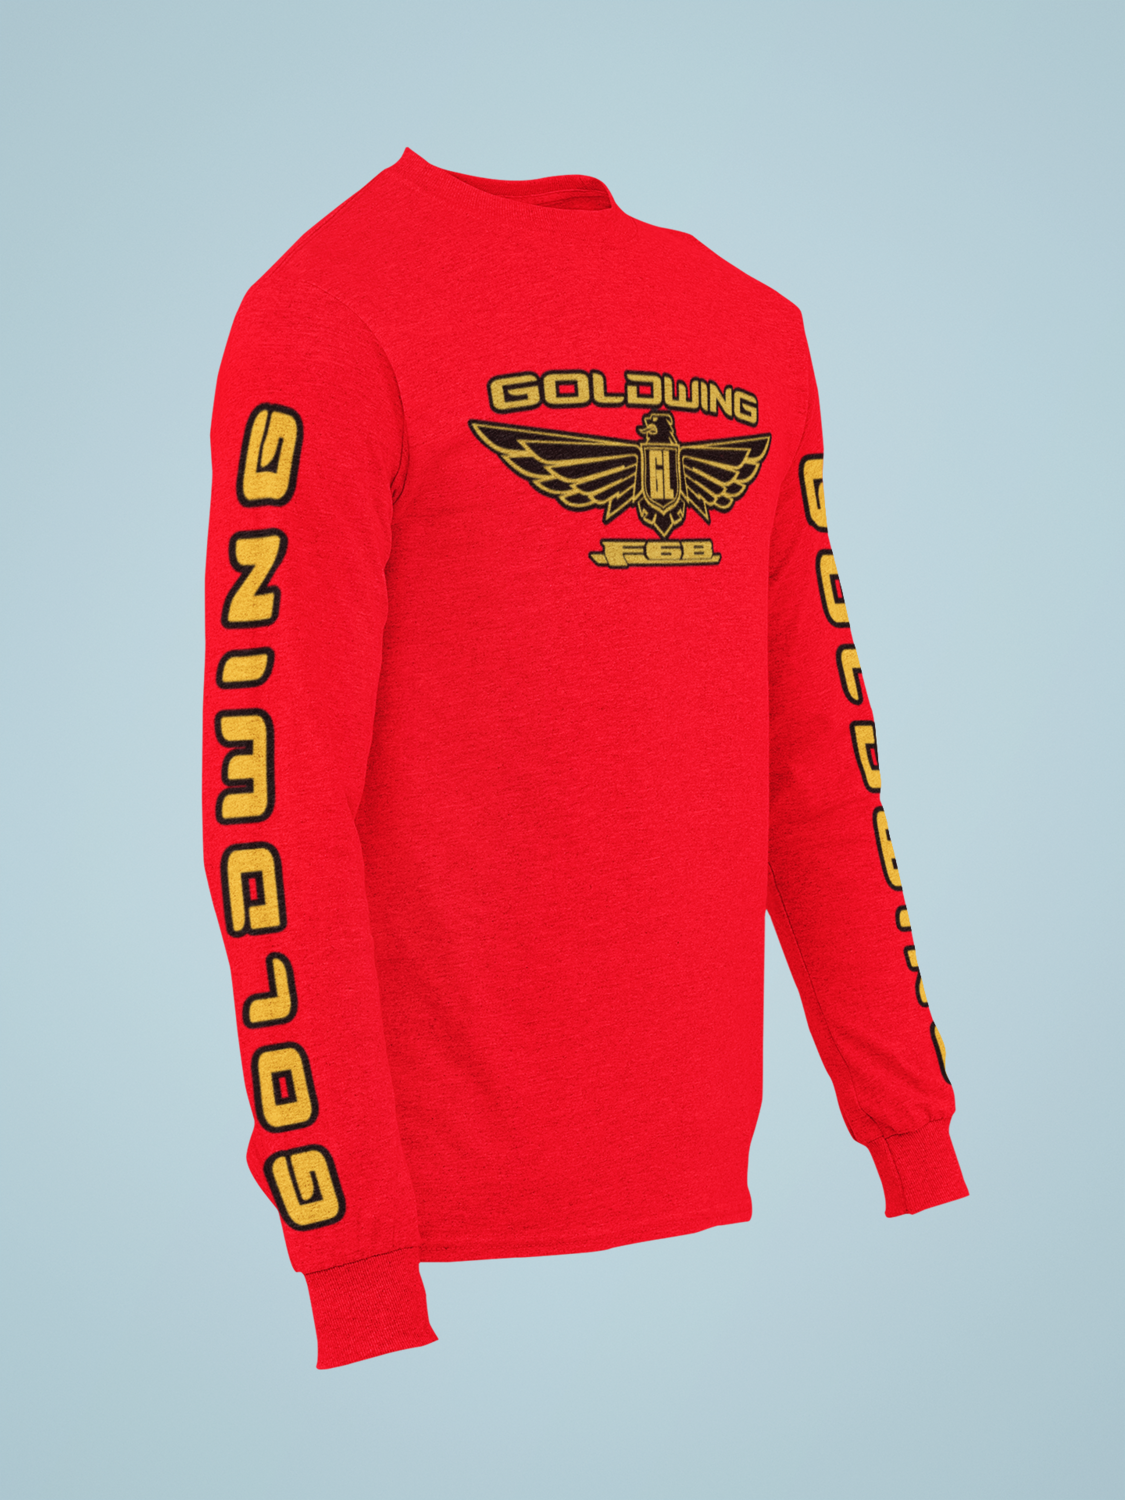 Goldwing F6B long sleeve shirts